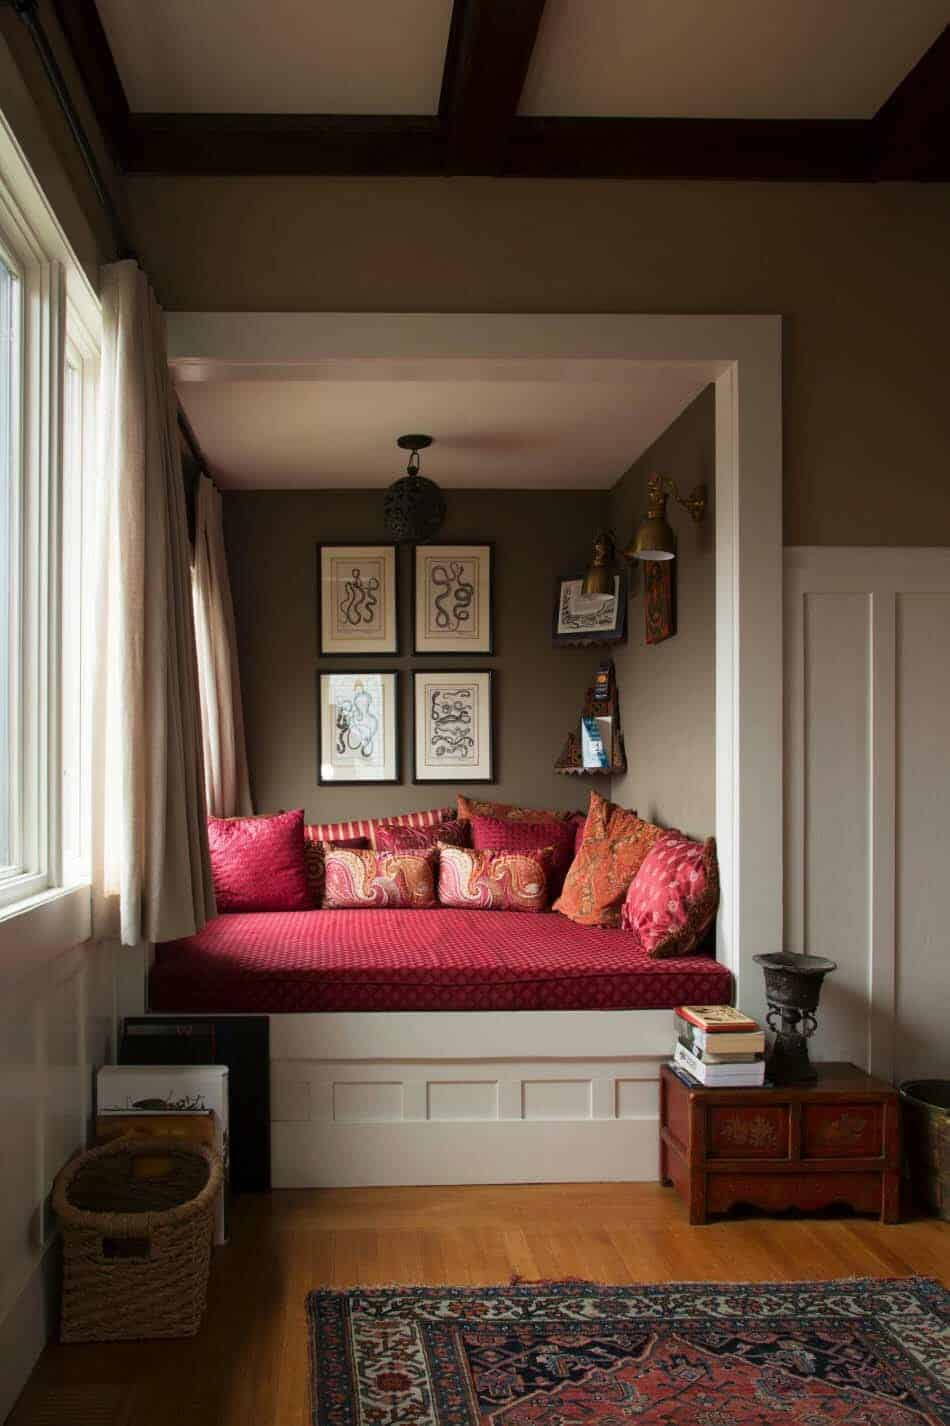 20+ Incredibly cozy book nooks you may never want to leave! on Nook's Cranny Design Ideas  id=48033